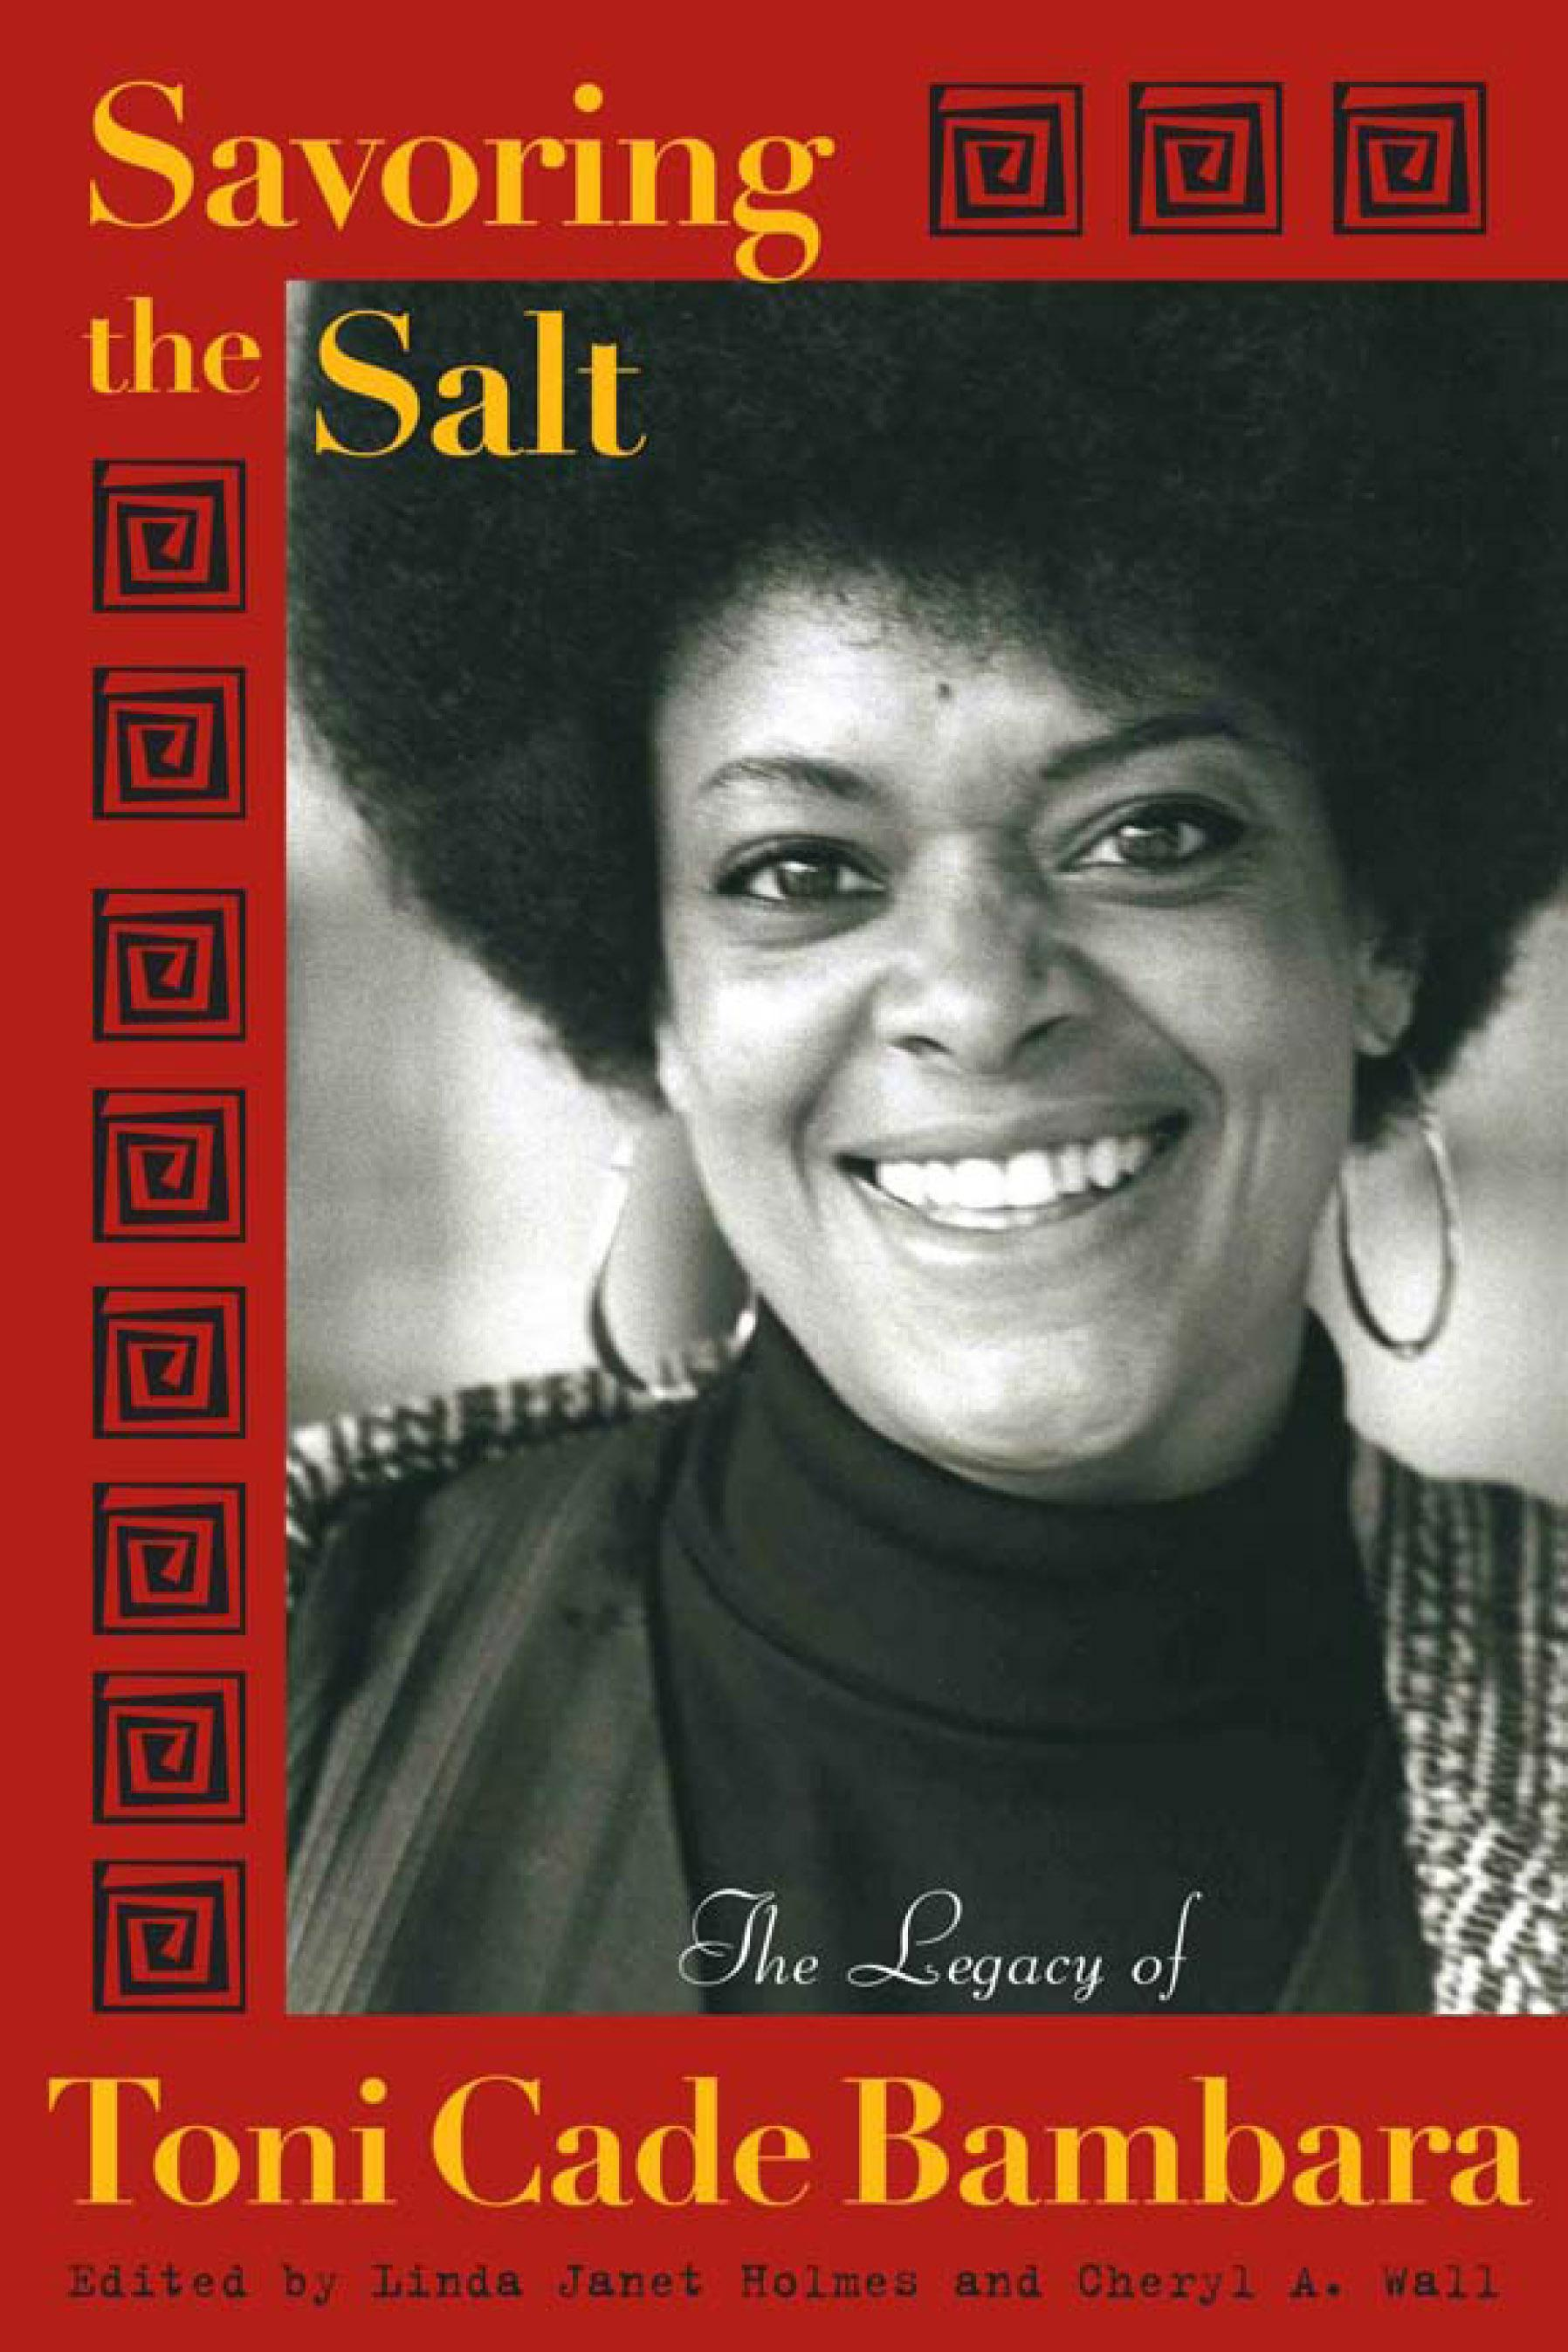 Savoring the Salt: The Legacy of Toni Cade Bambara